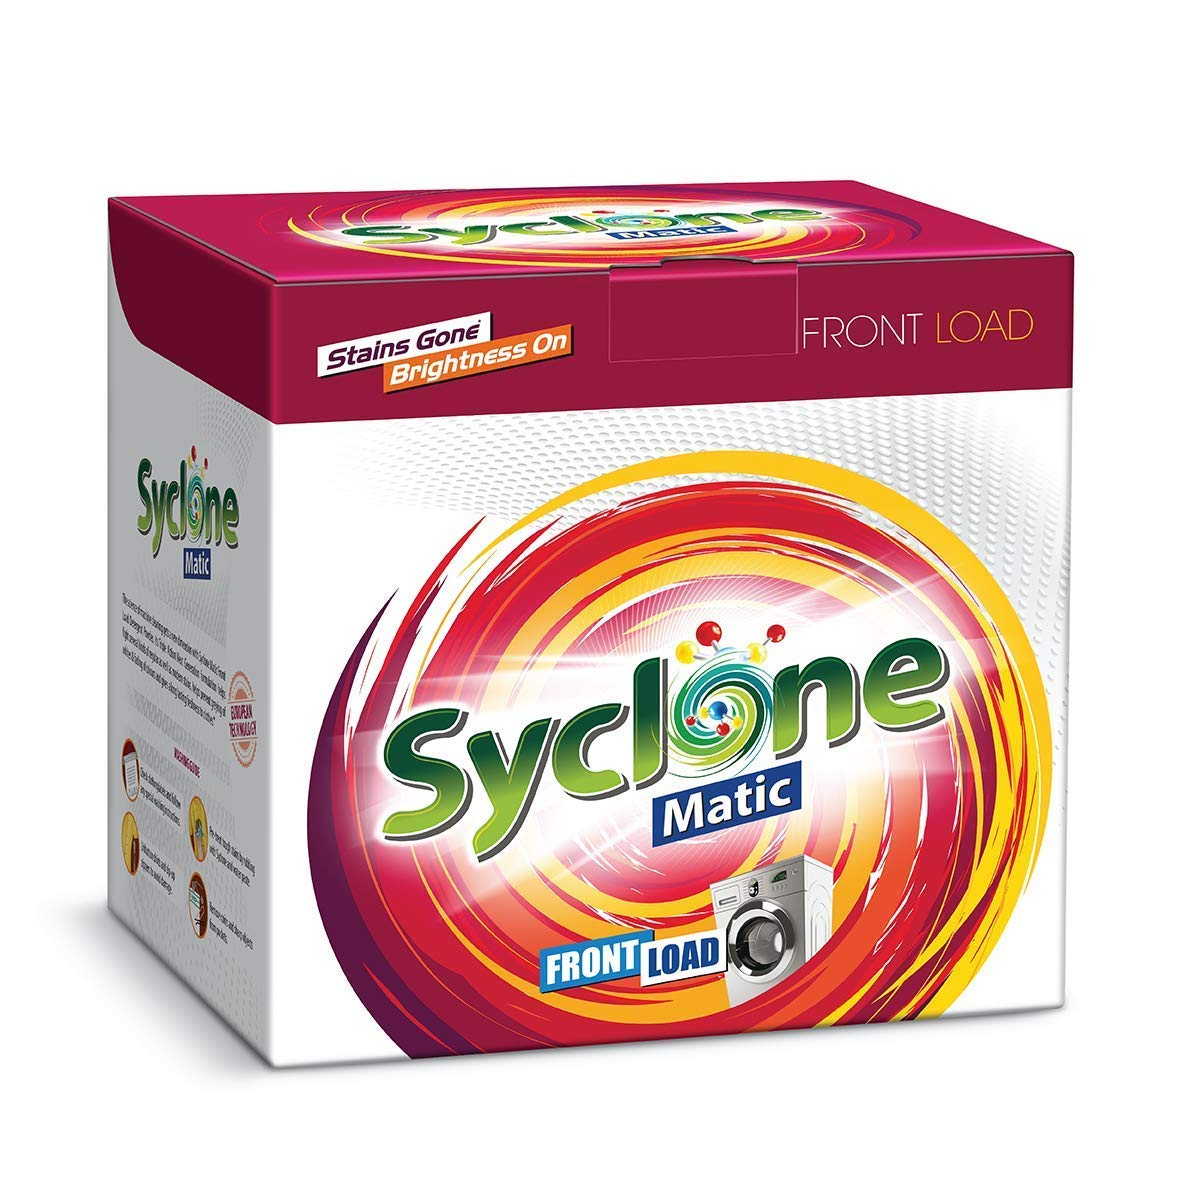 Syclone Matic Front Load Detergent Powder – 6 Kg